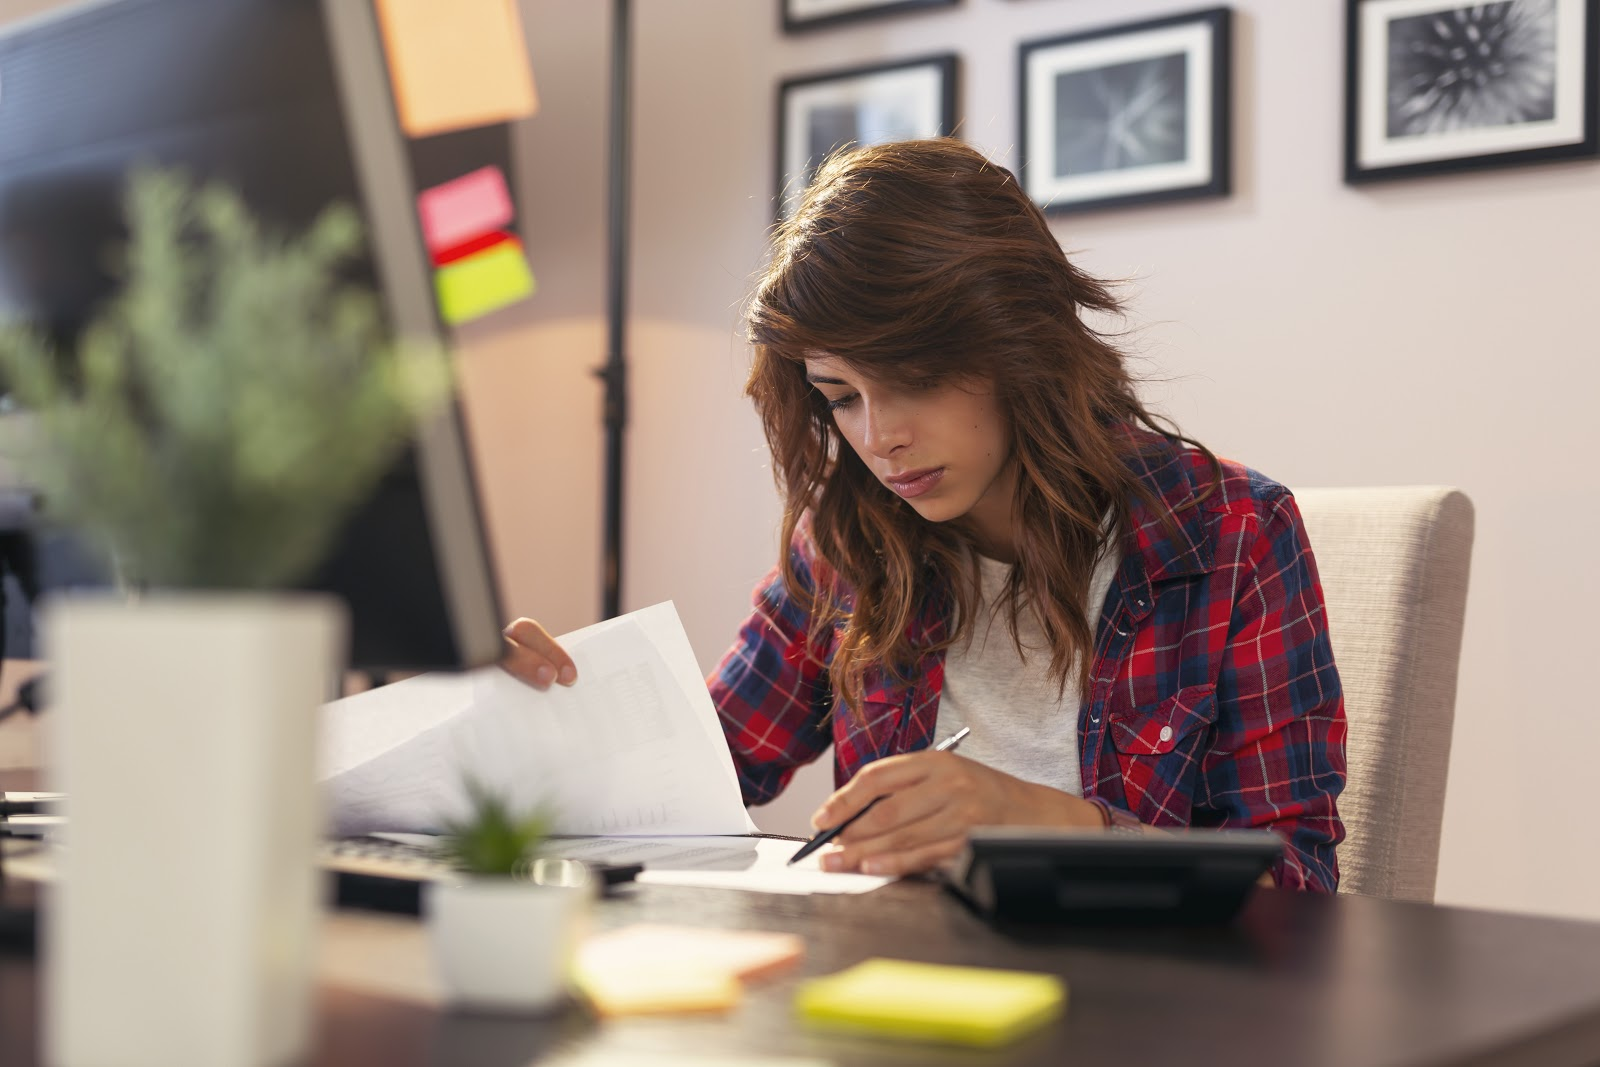 Young woman reviewing documents, working late in a home office